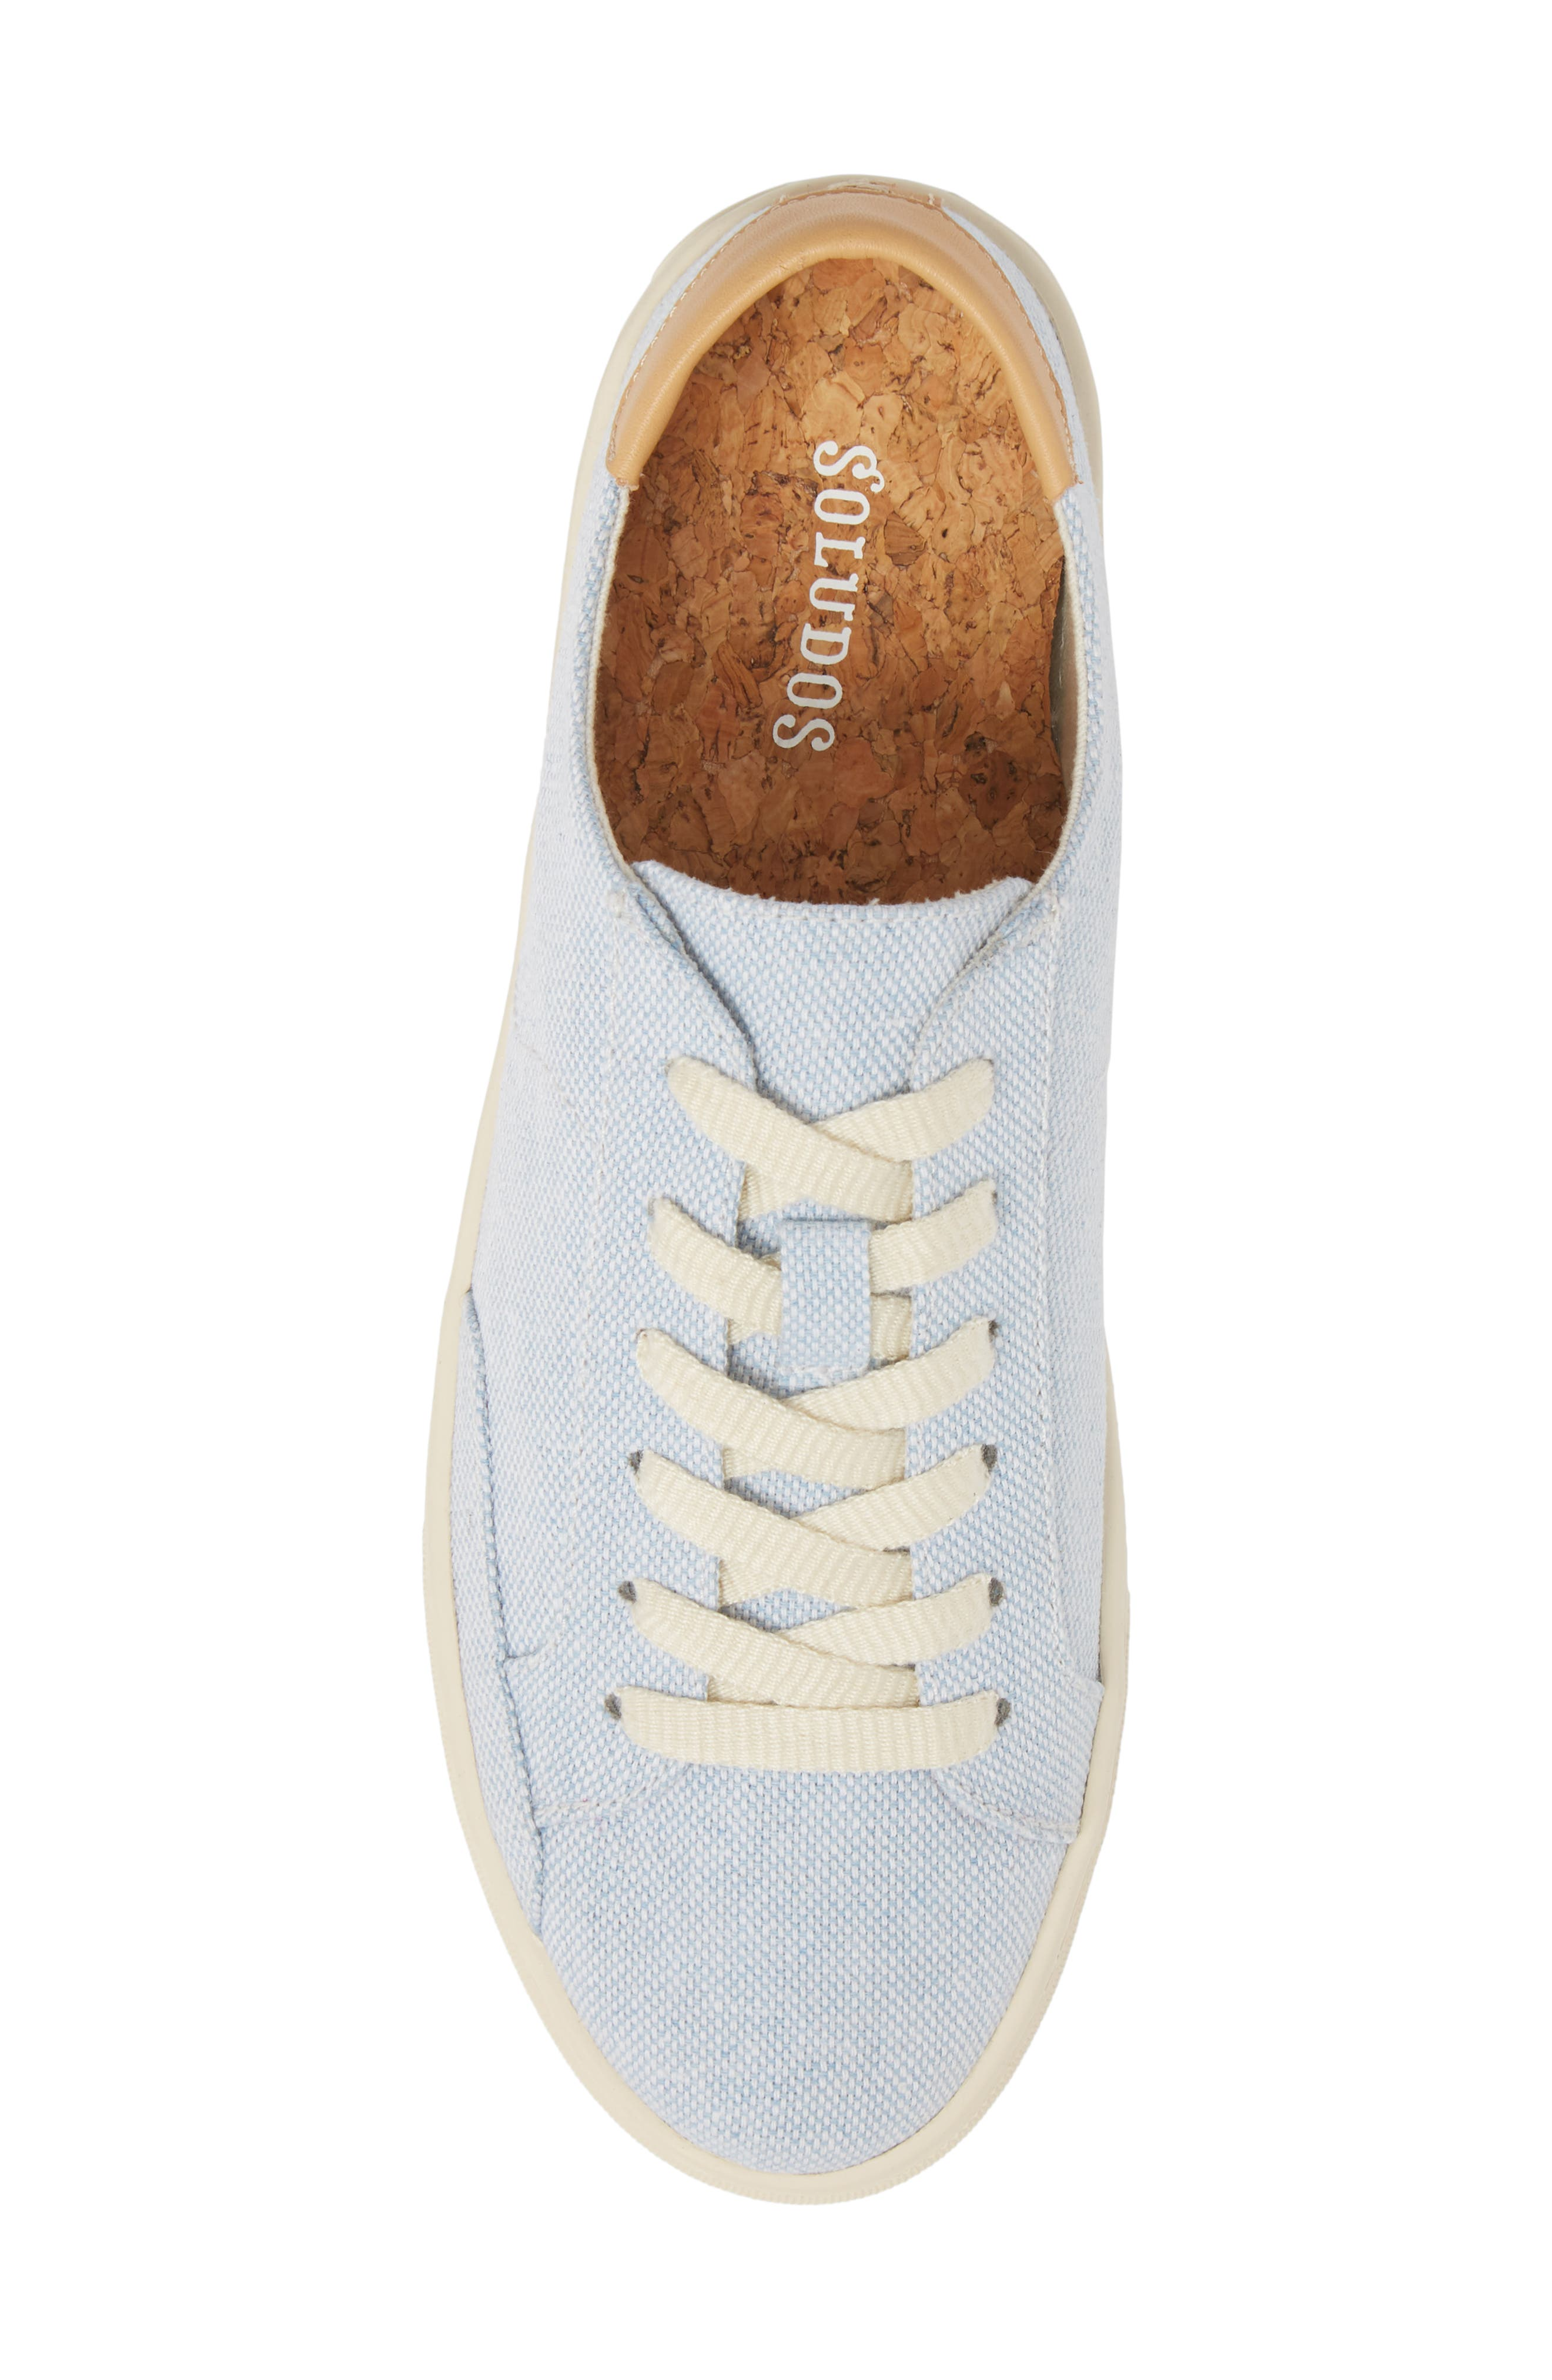 Ibiza Canvas Lace-Up Sneaker,                             Alternate thumbnail 5, color,                             SKY BLUE